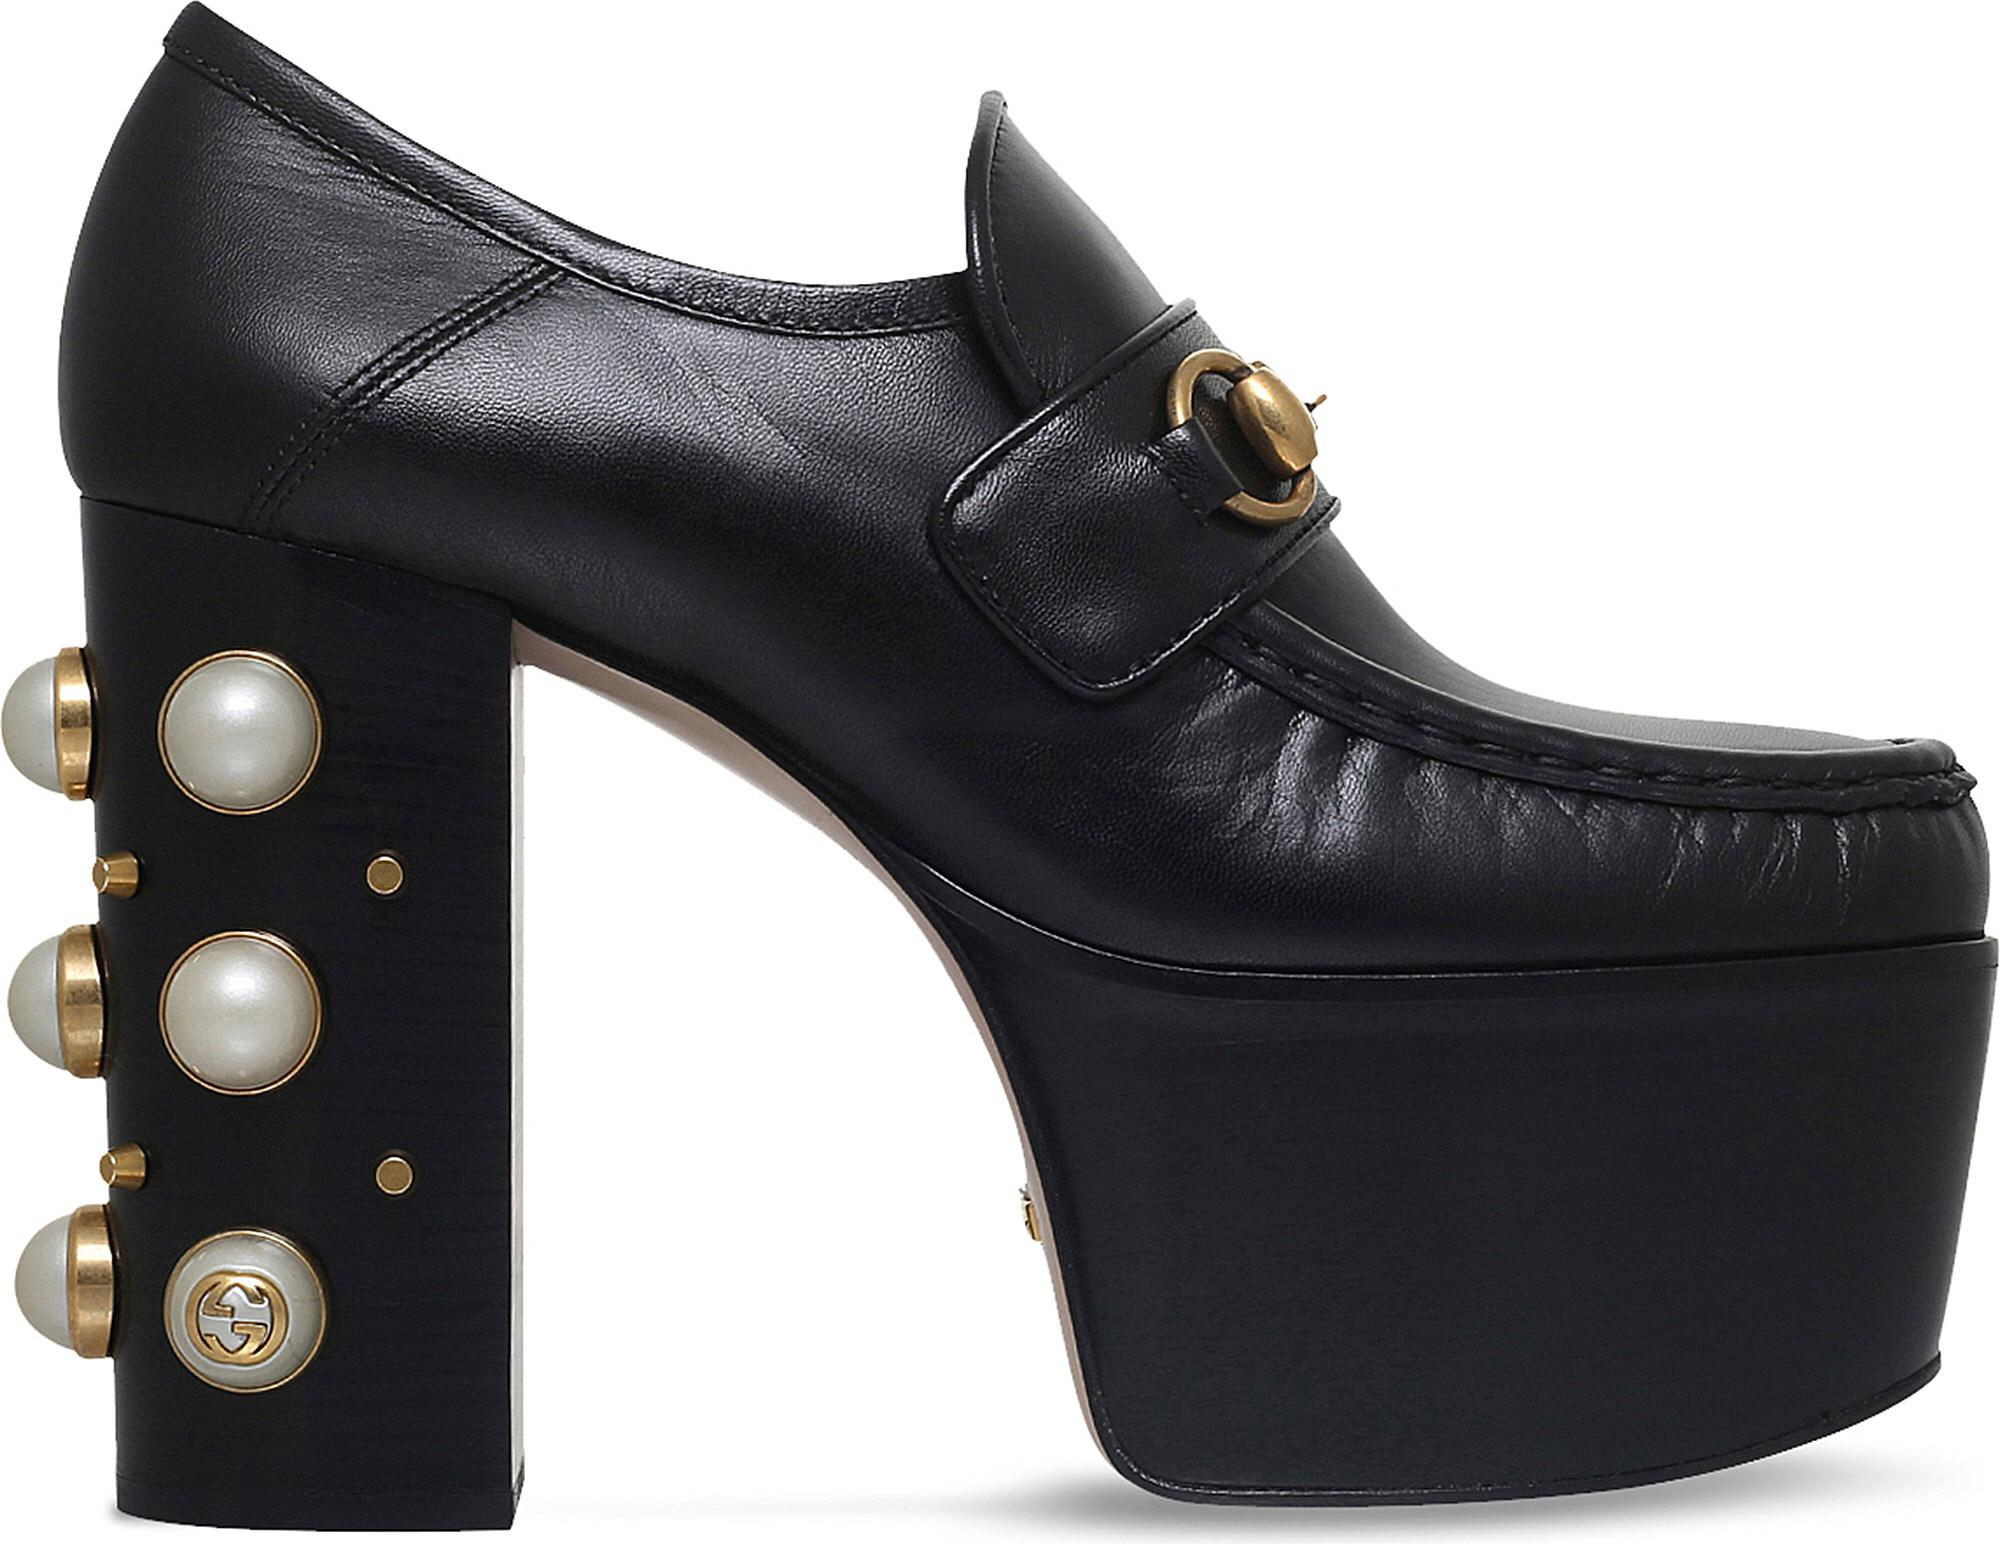 fff0638c2a8 Gucci Vegas Horsebit Platform Loafer in Black - Lyst